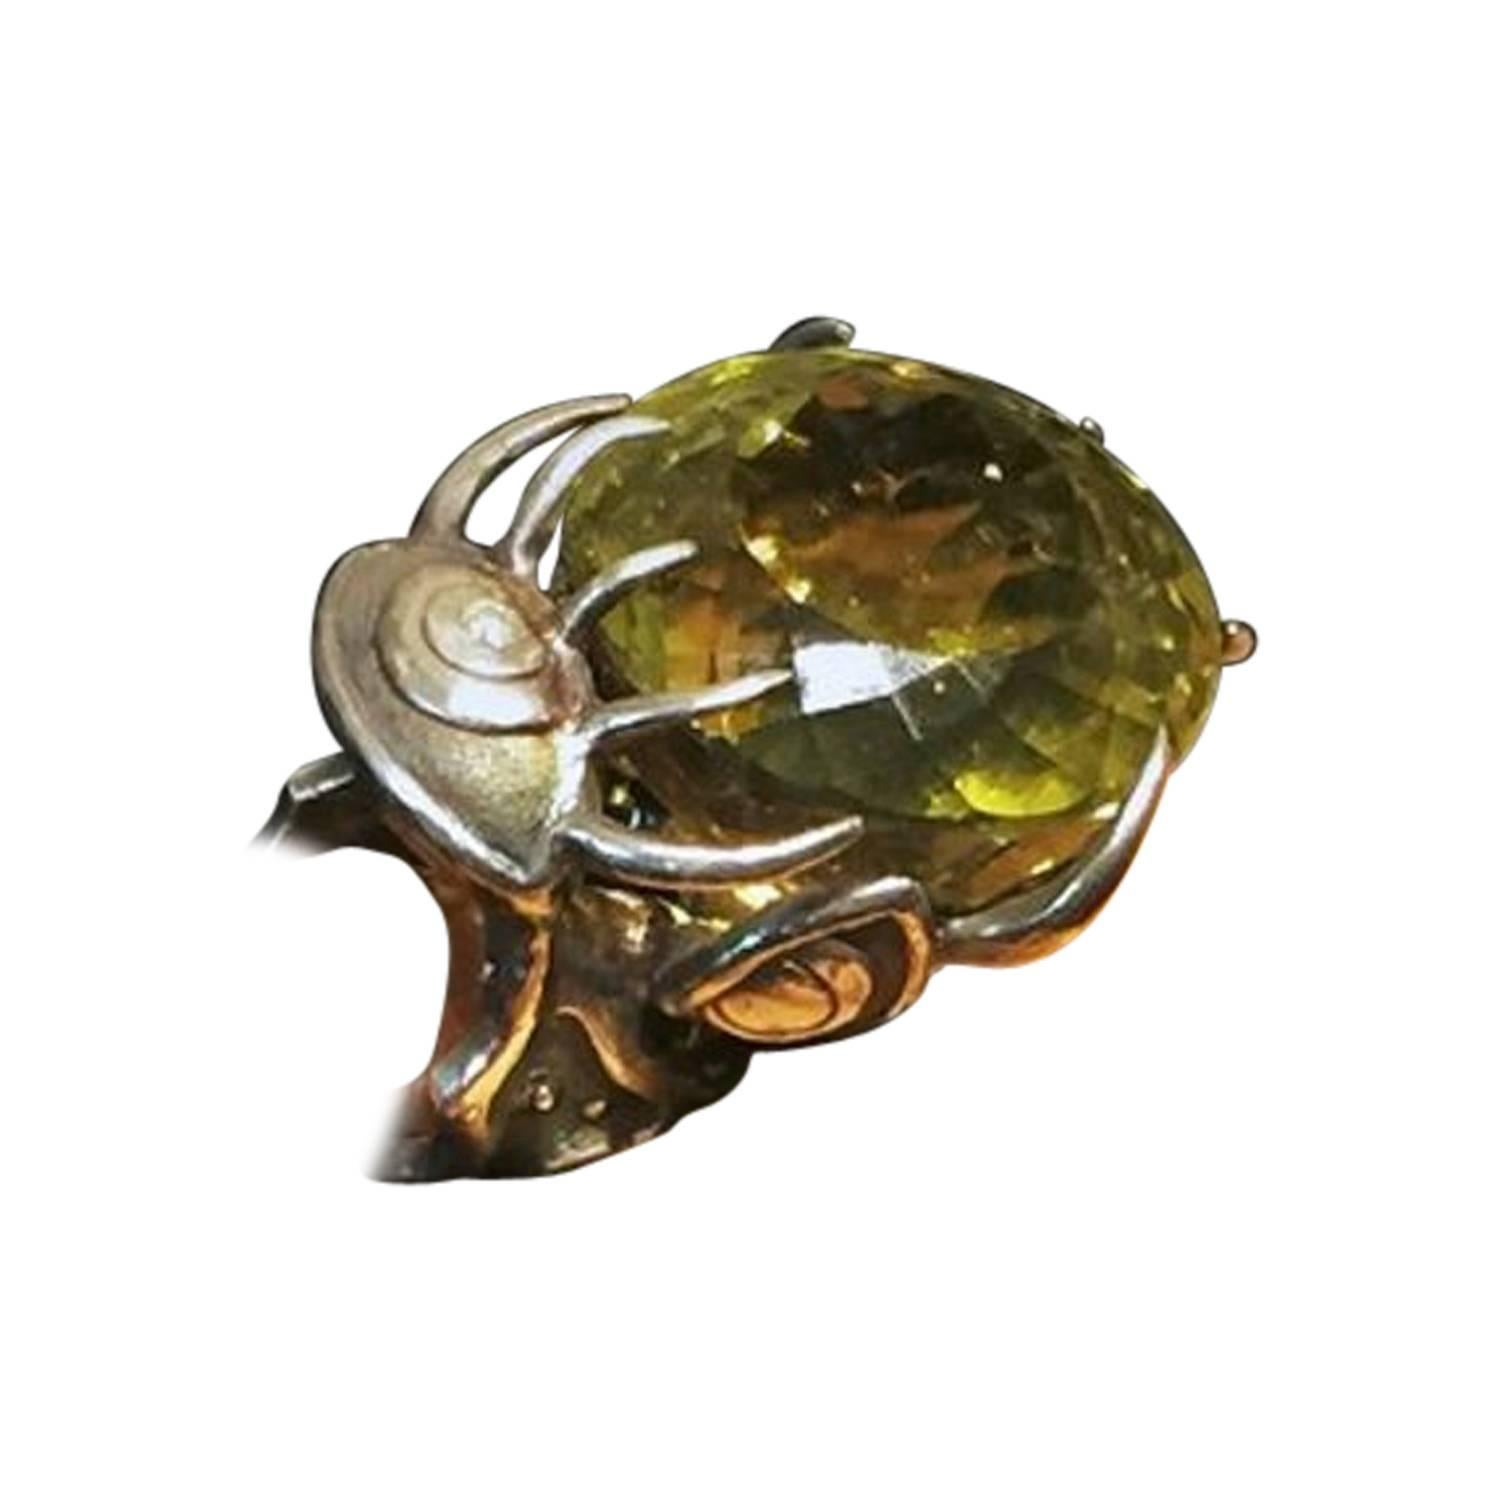 Val Stern, Evil Eye Protector, Sculptural Ring, 21st Century